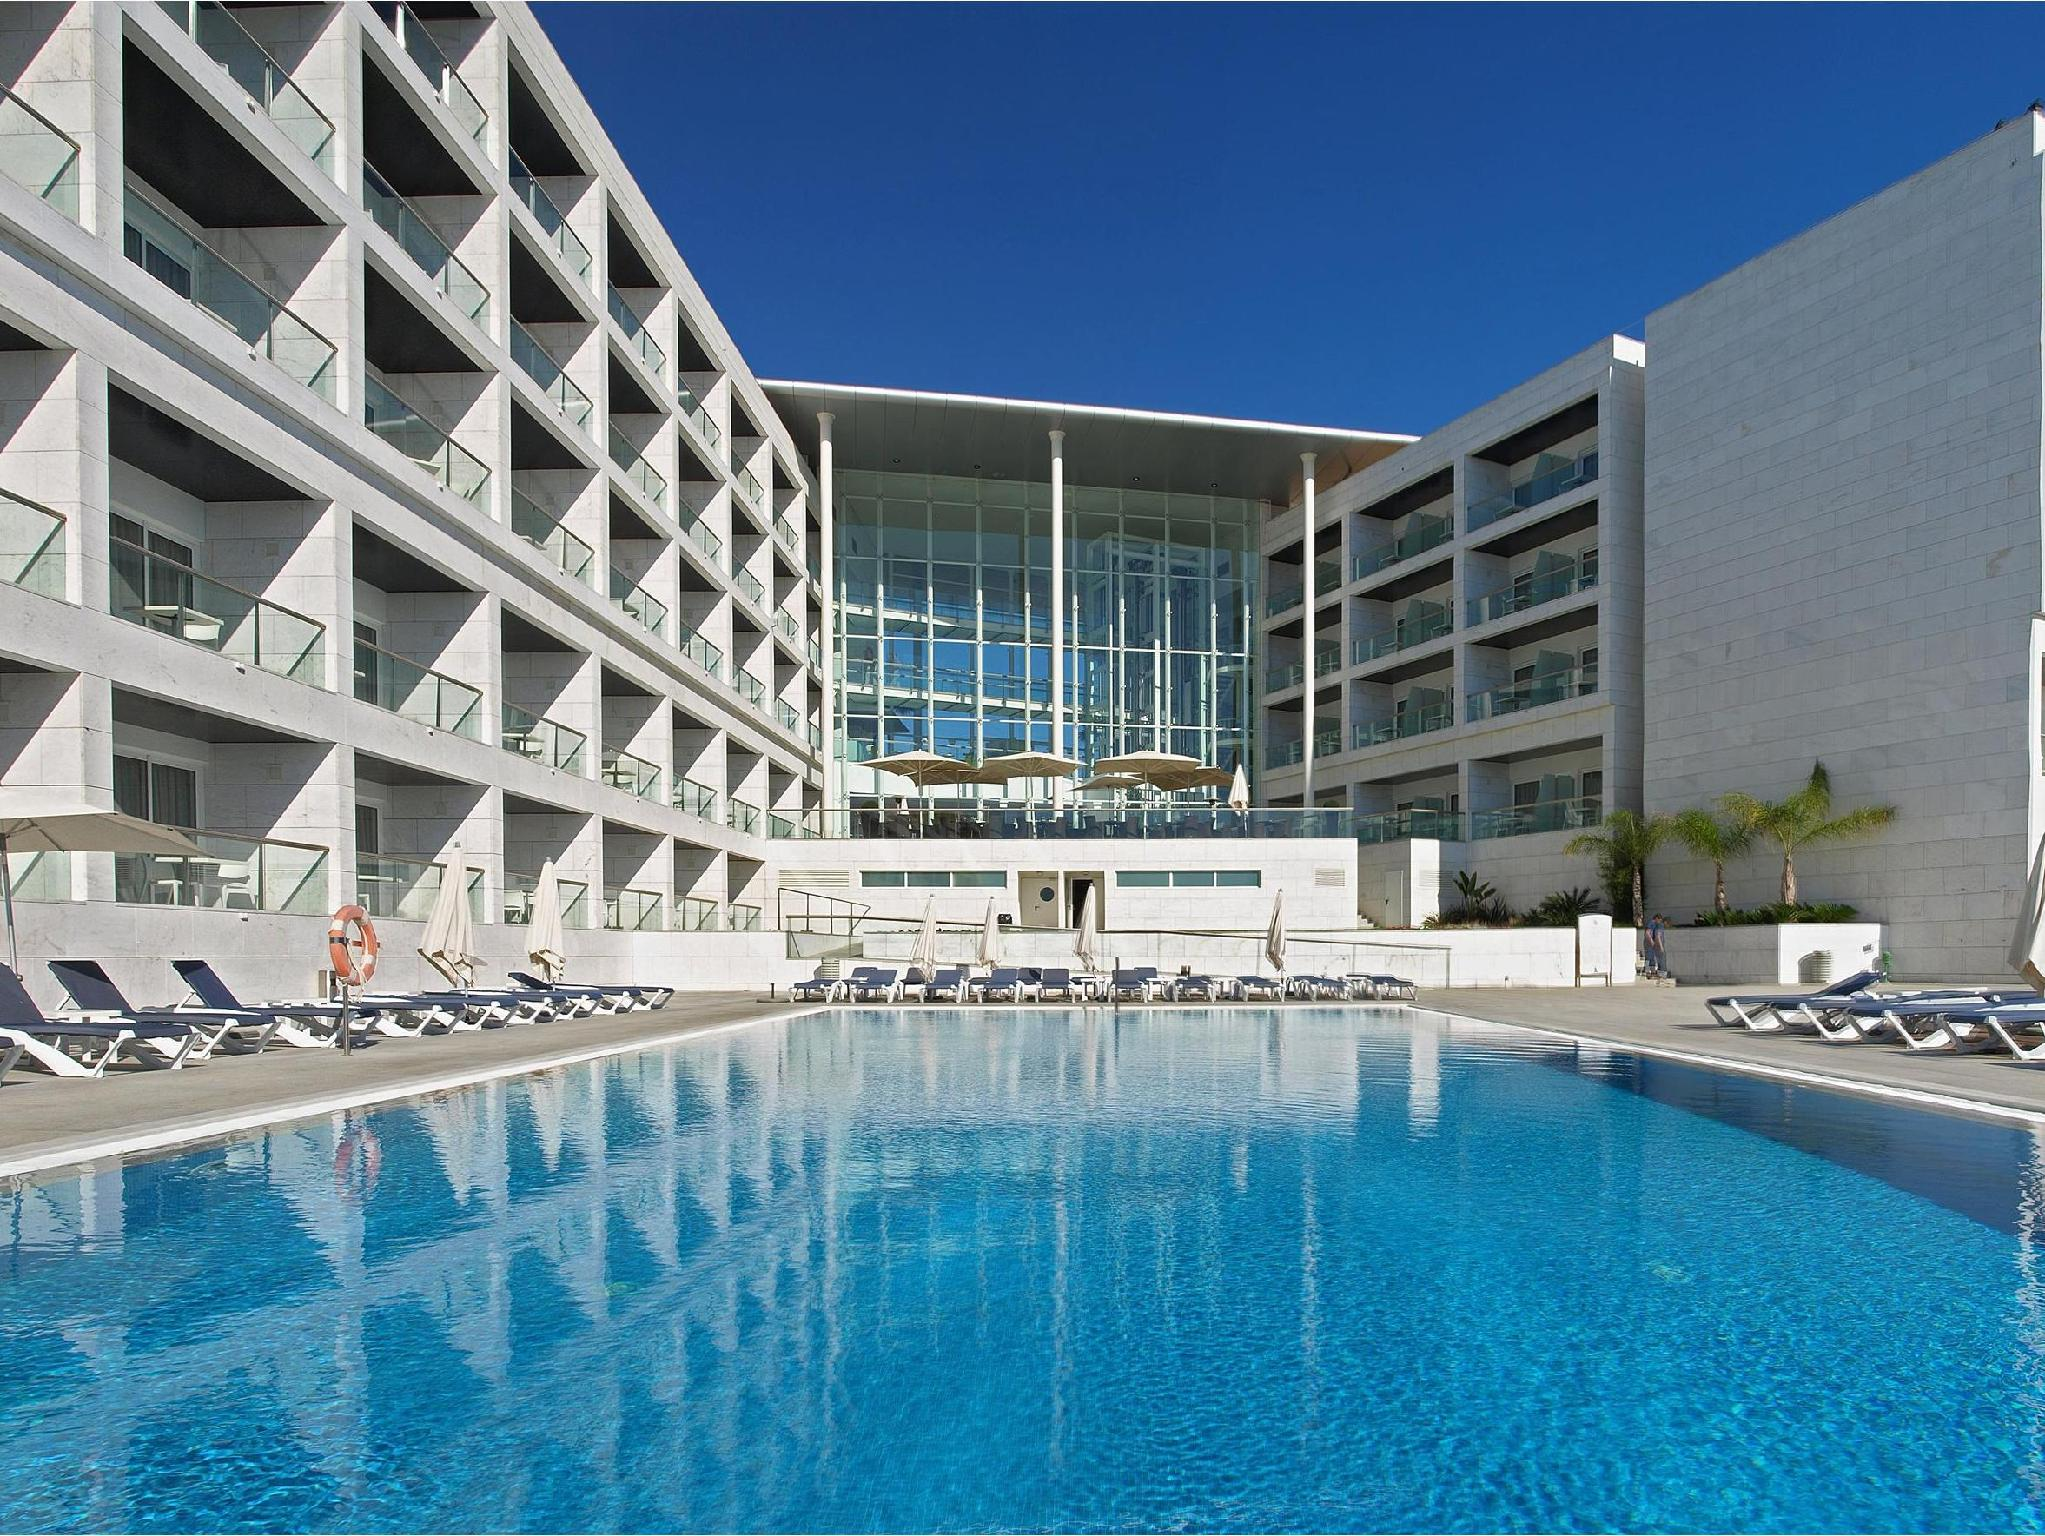 Lissabon Hotel Zwembad Book Aldeia Dos Capuchos Hotel Lisbon 2019 Prices From A 140